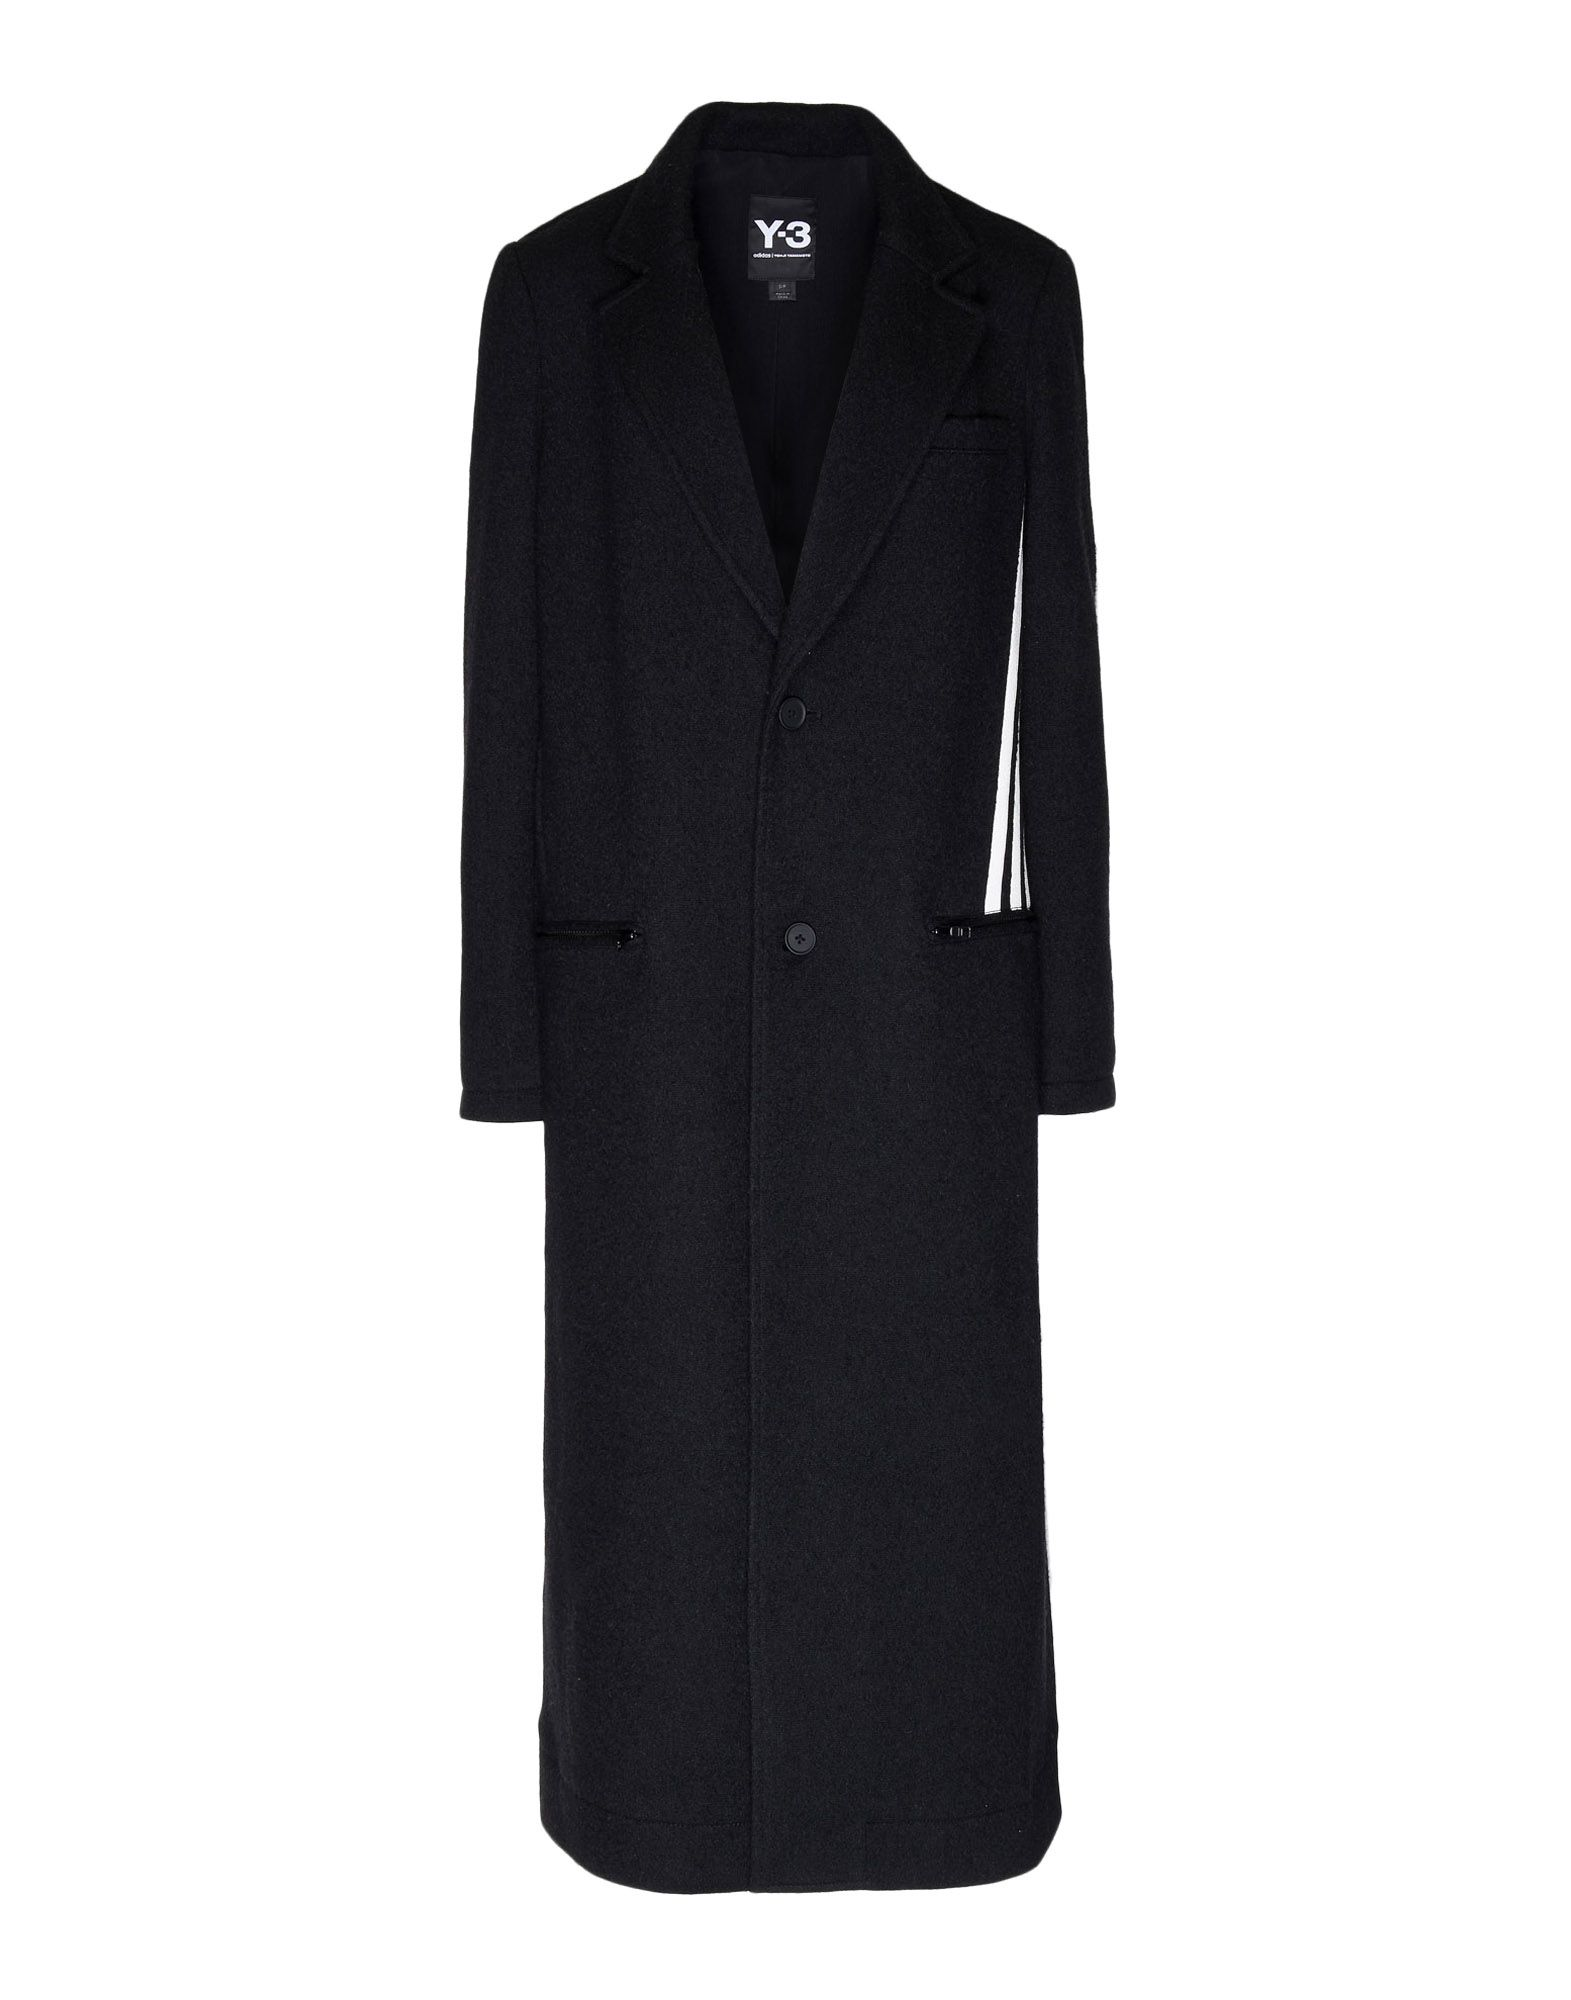 Y-3 Y-3 3-Stripes Tailored Wool Coat Blazer Woman f